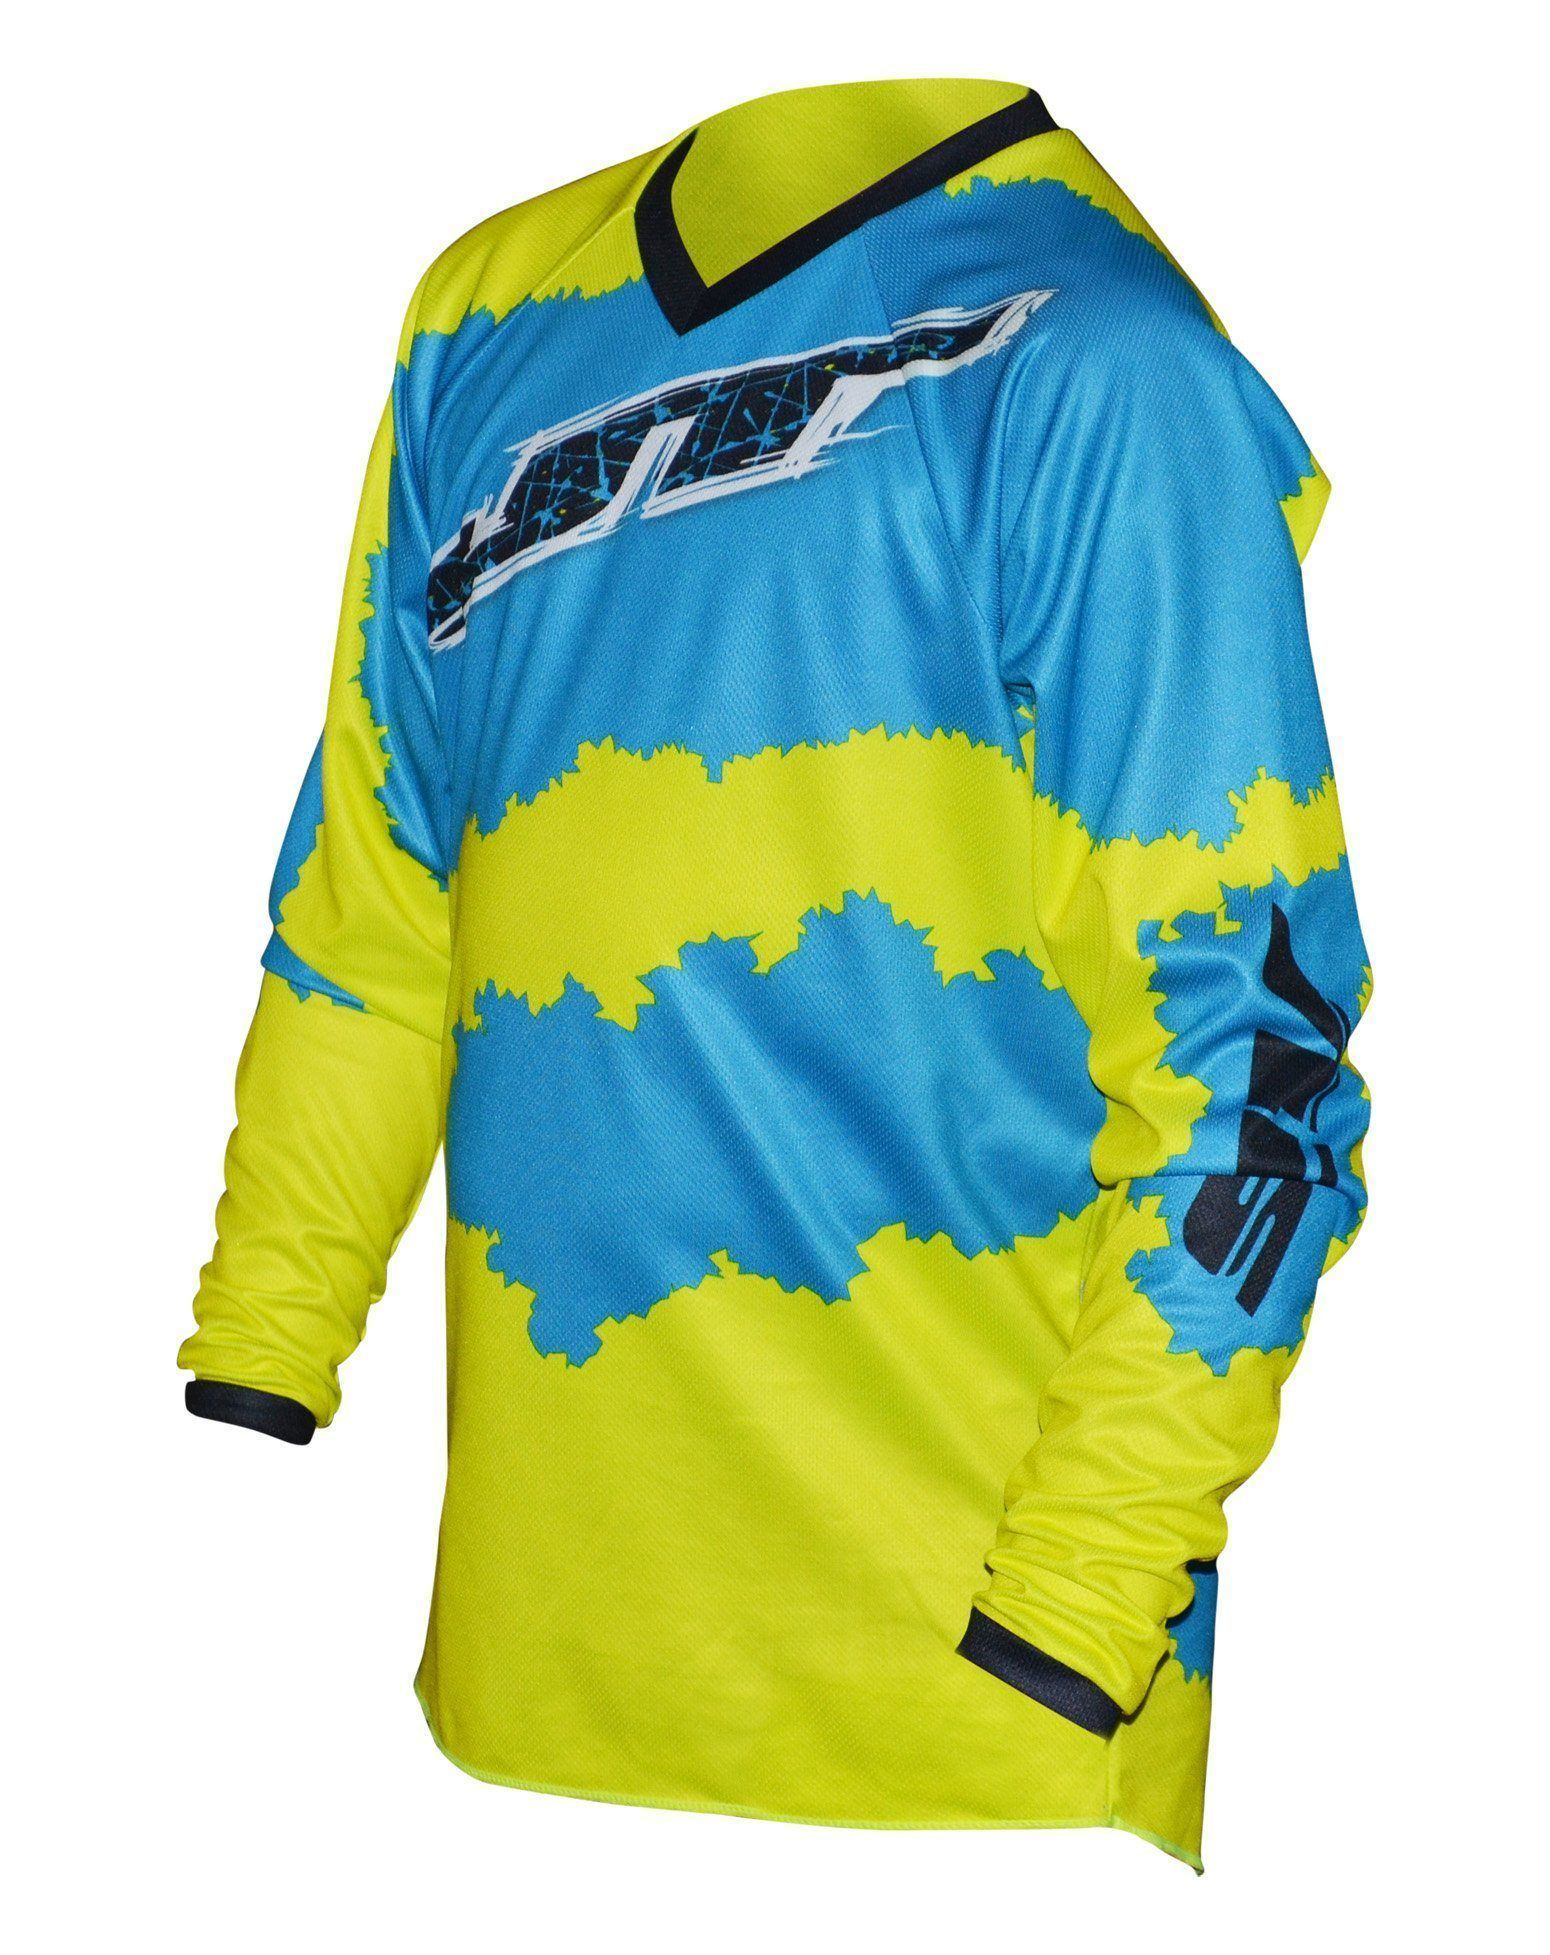 Youth Flex Ripper Jersey NYCNBK